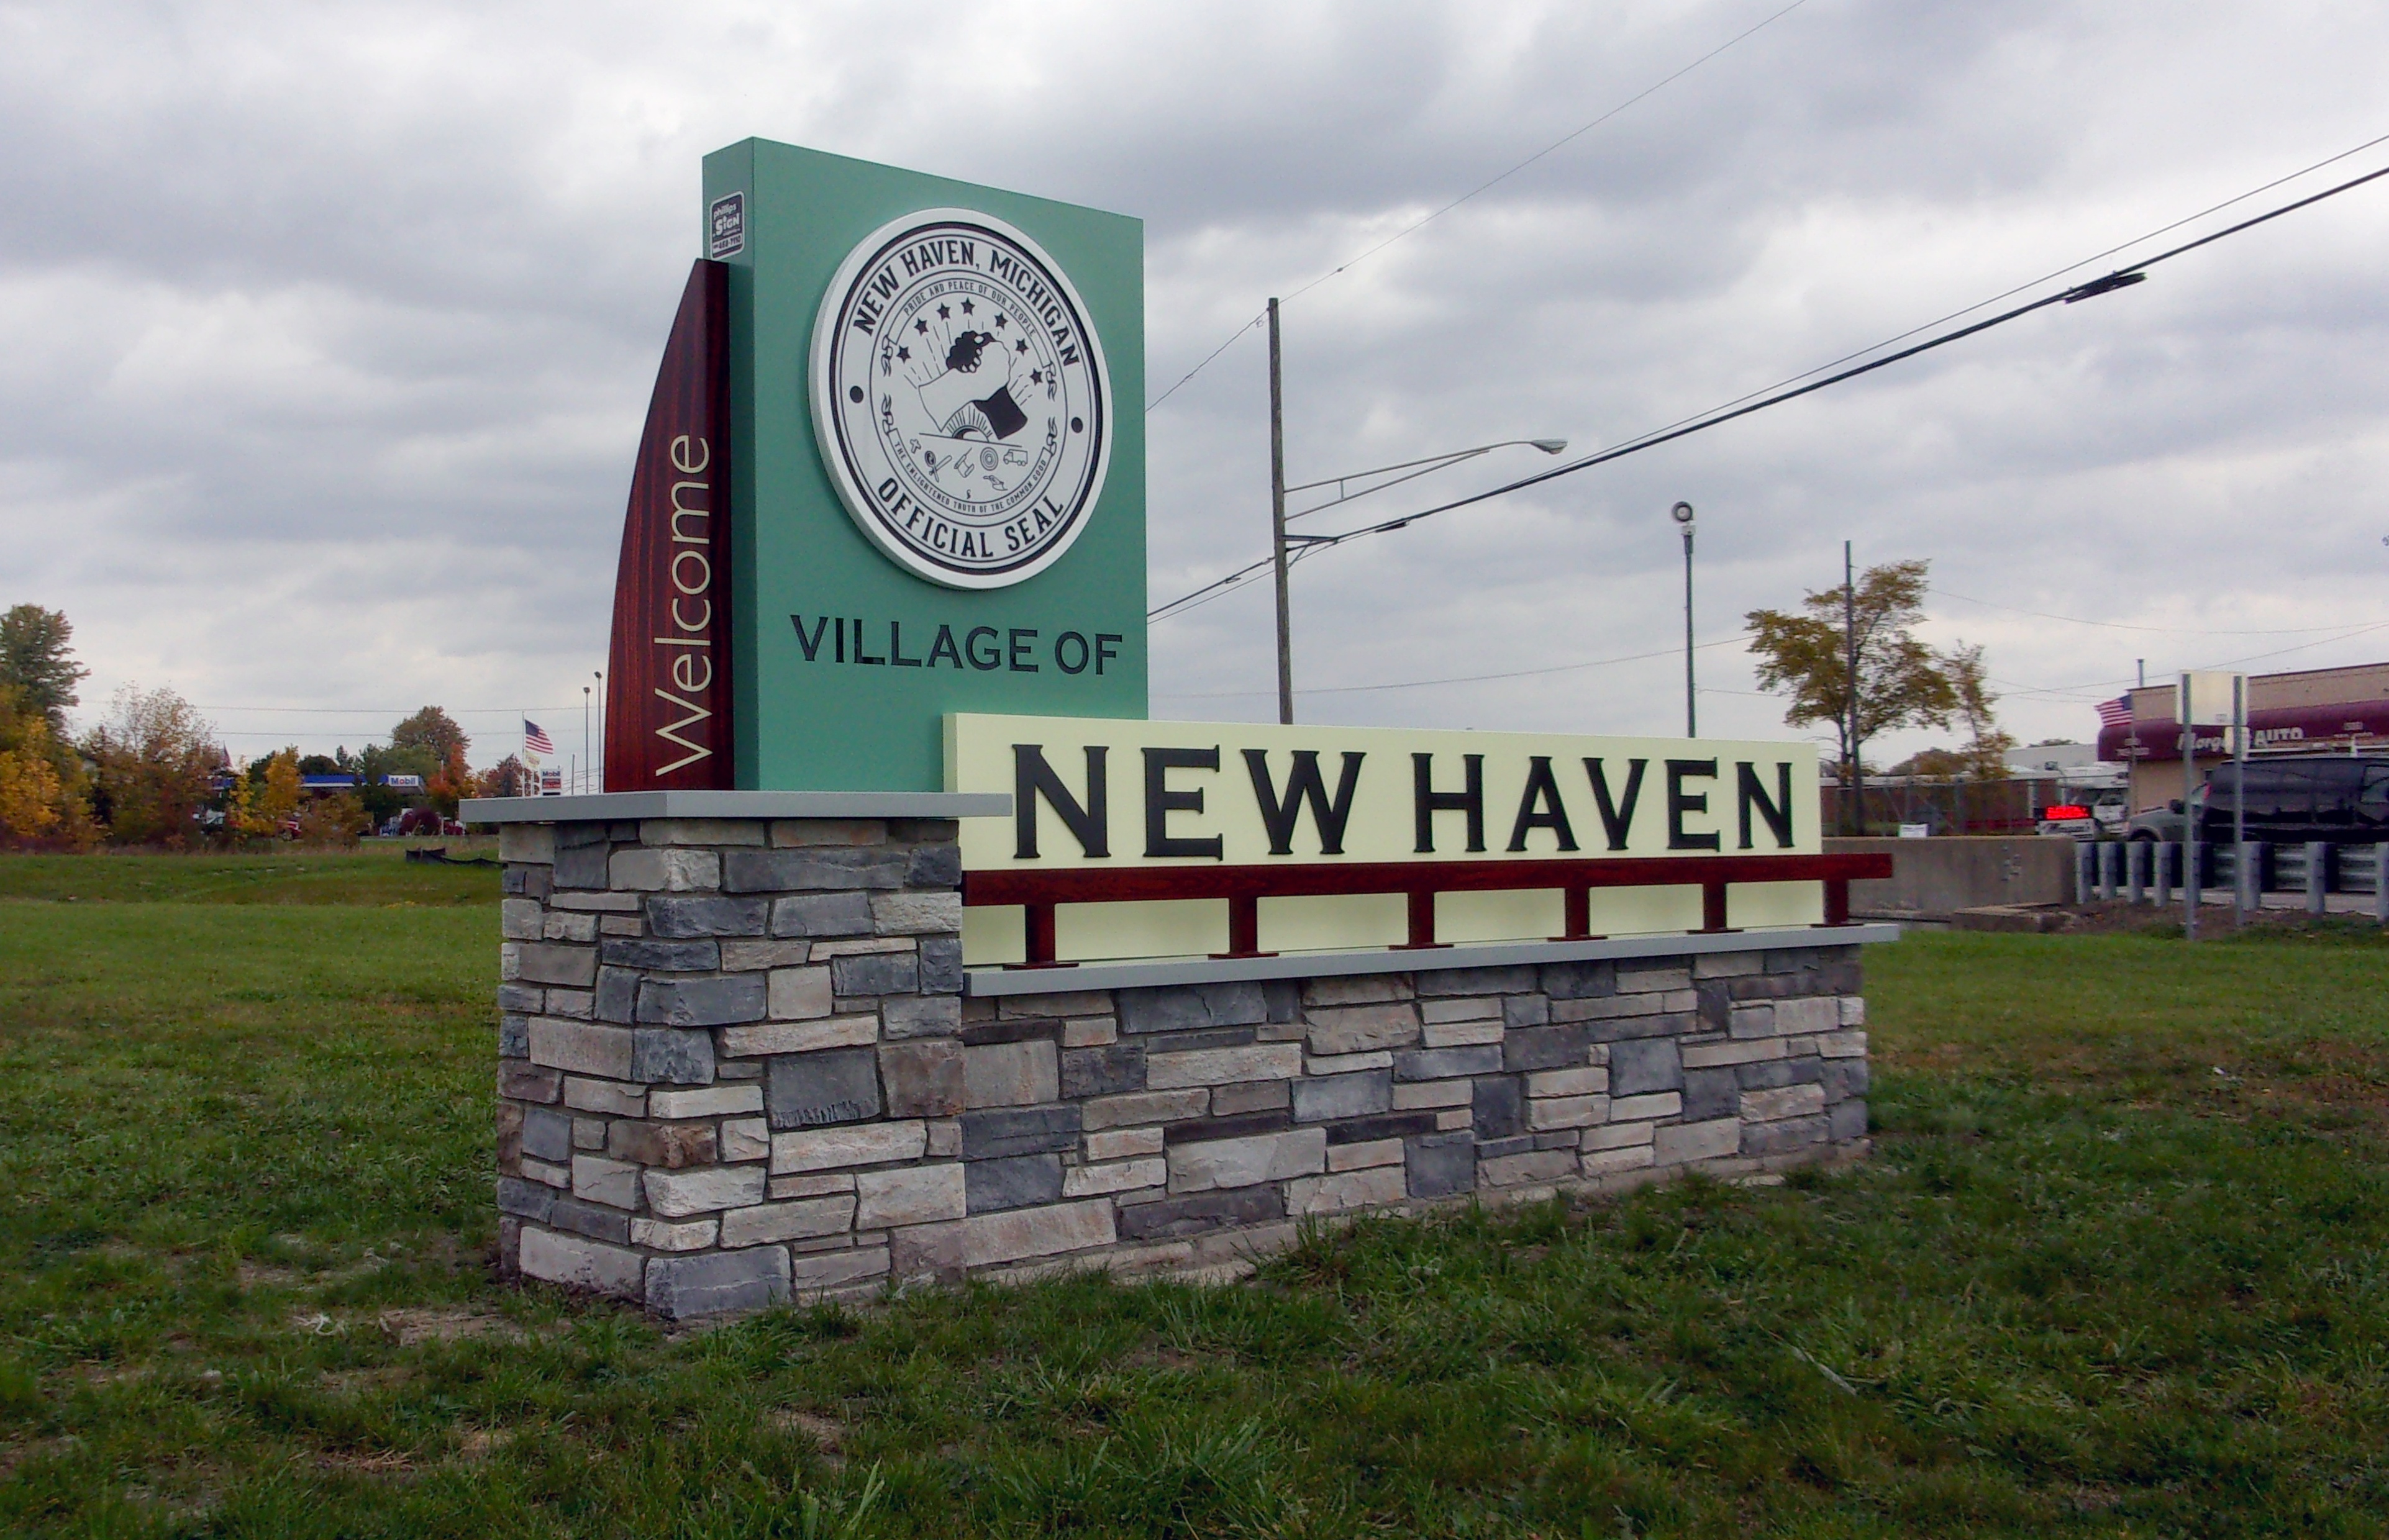 Village of New Haven